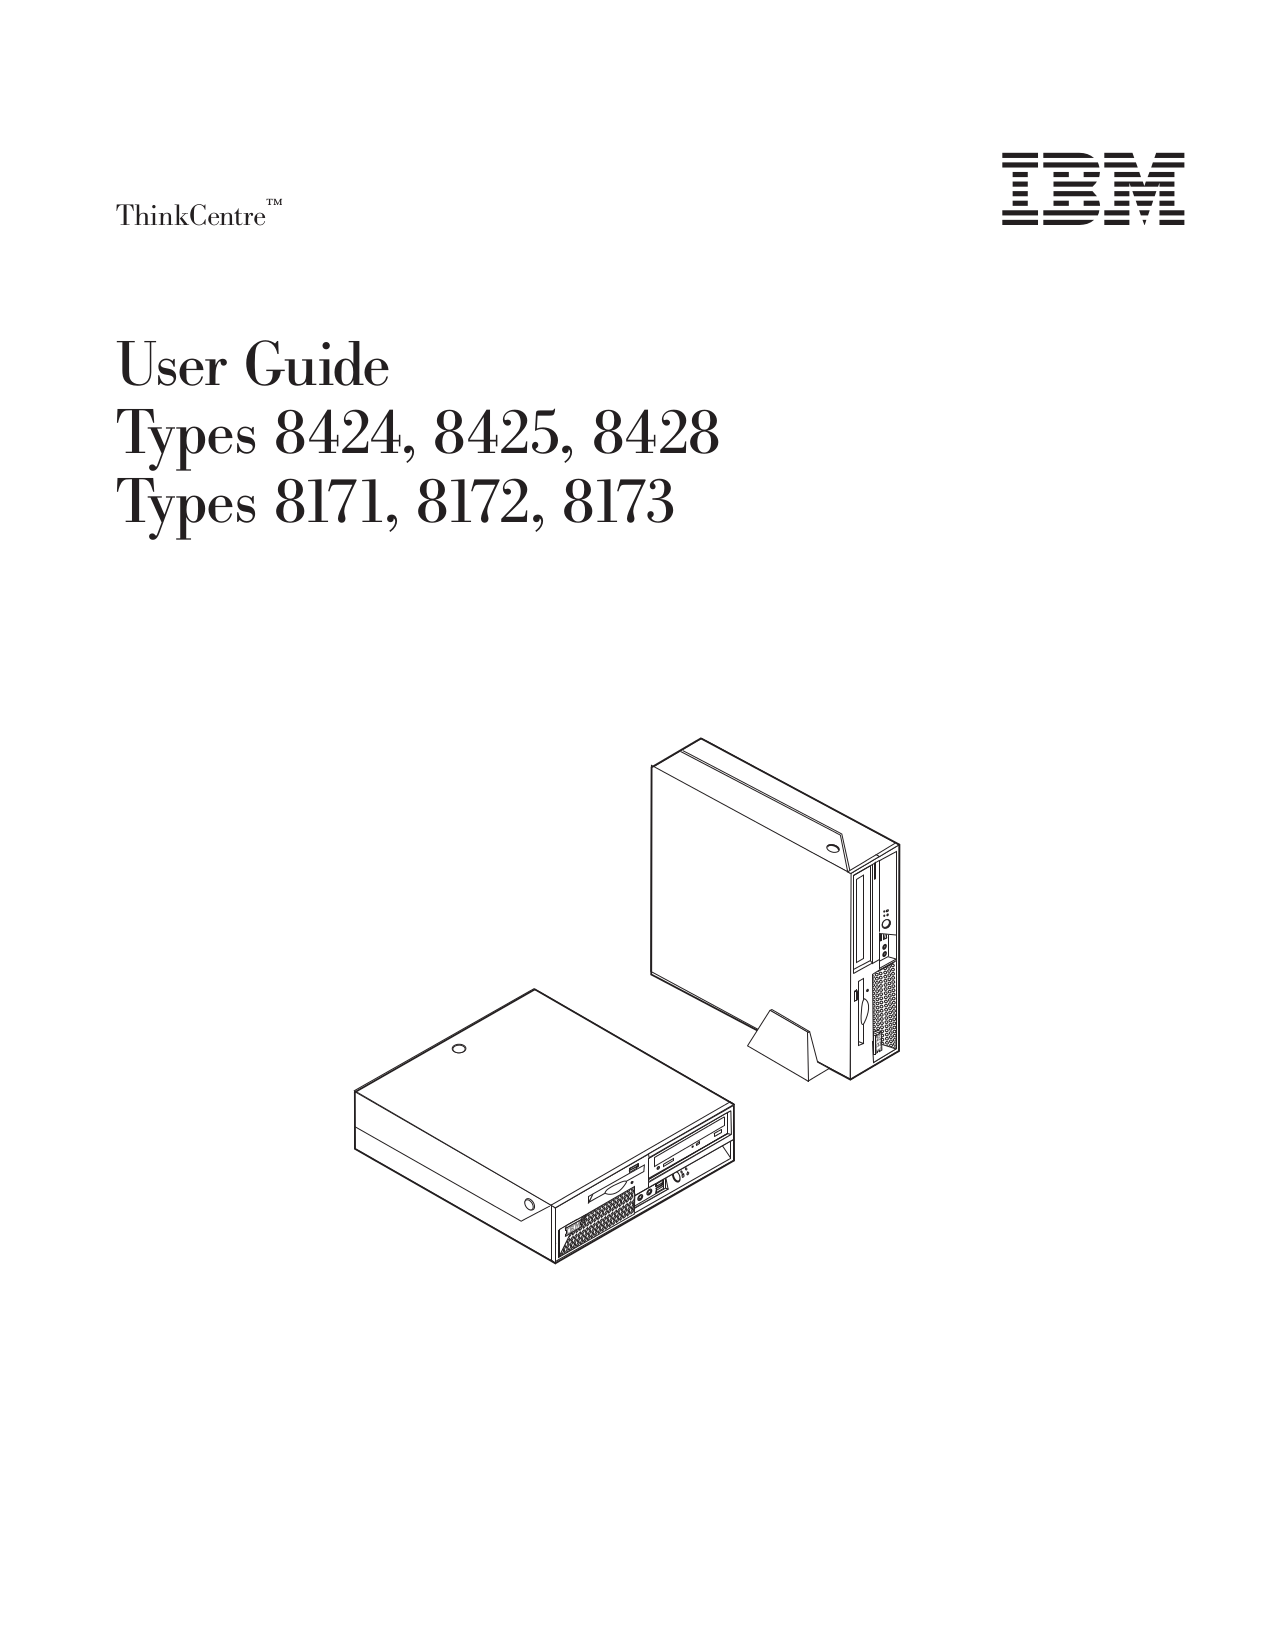 pdf for Lenovo Desktop ThinkCentre M52 8114 manual